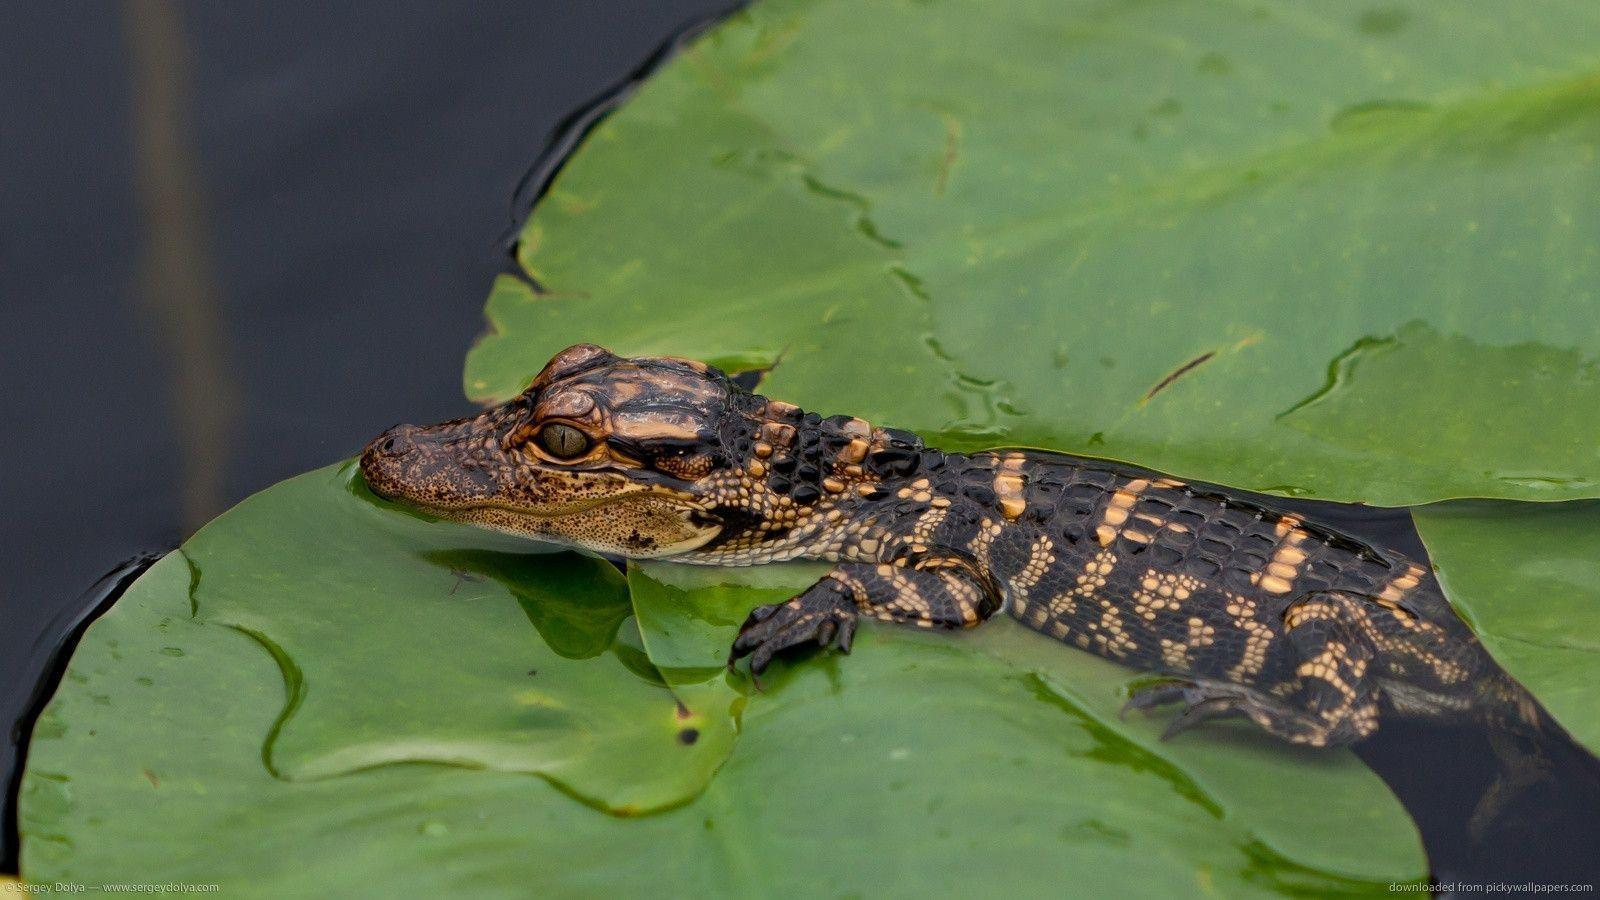 Small Alligator Wallpapers animal wallpapers